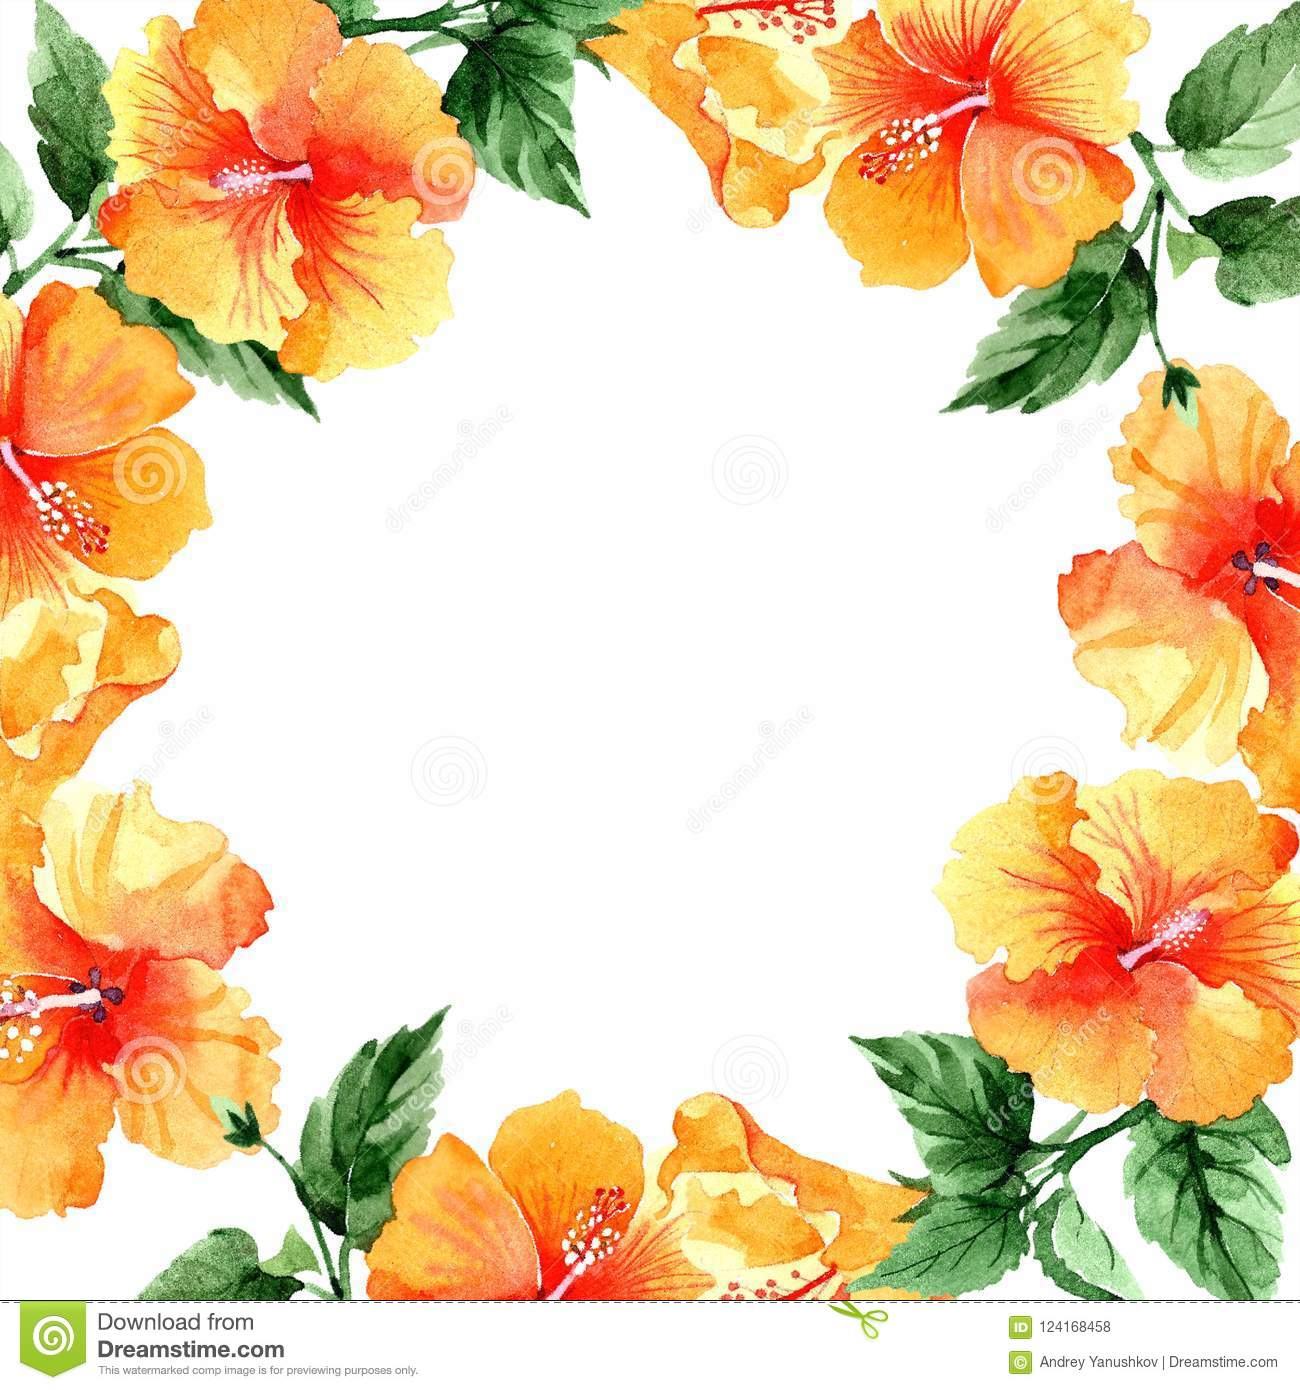 Watercolor Orange Naranja Hibiscus Flowers Floral Botanical Flower